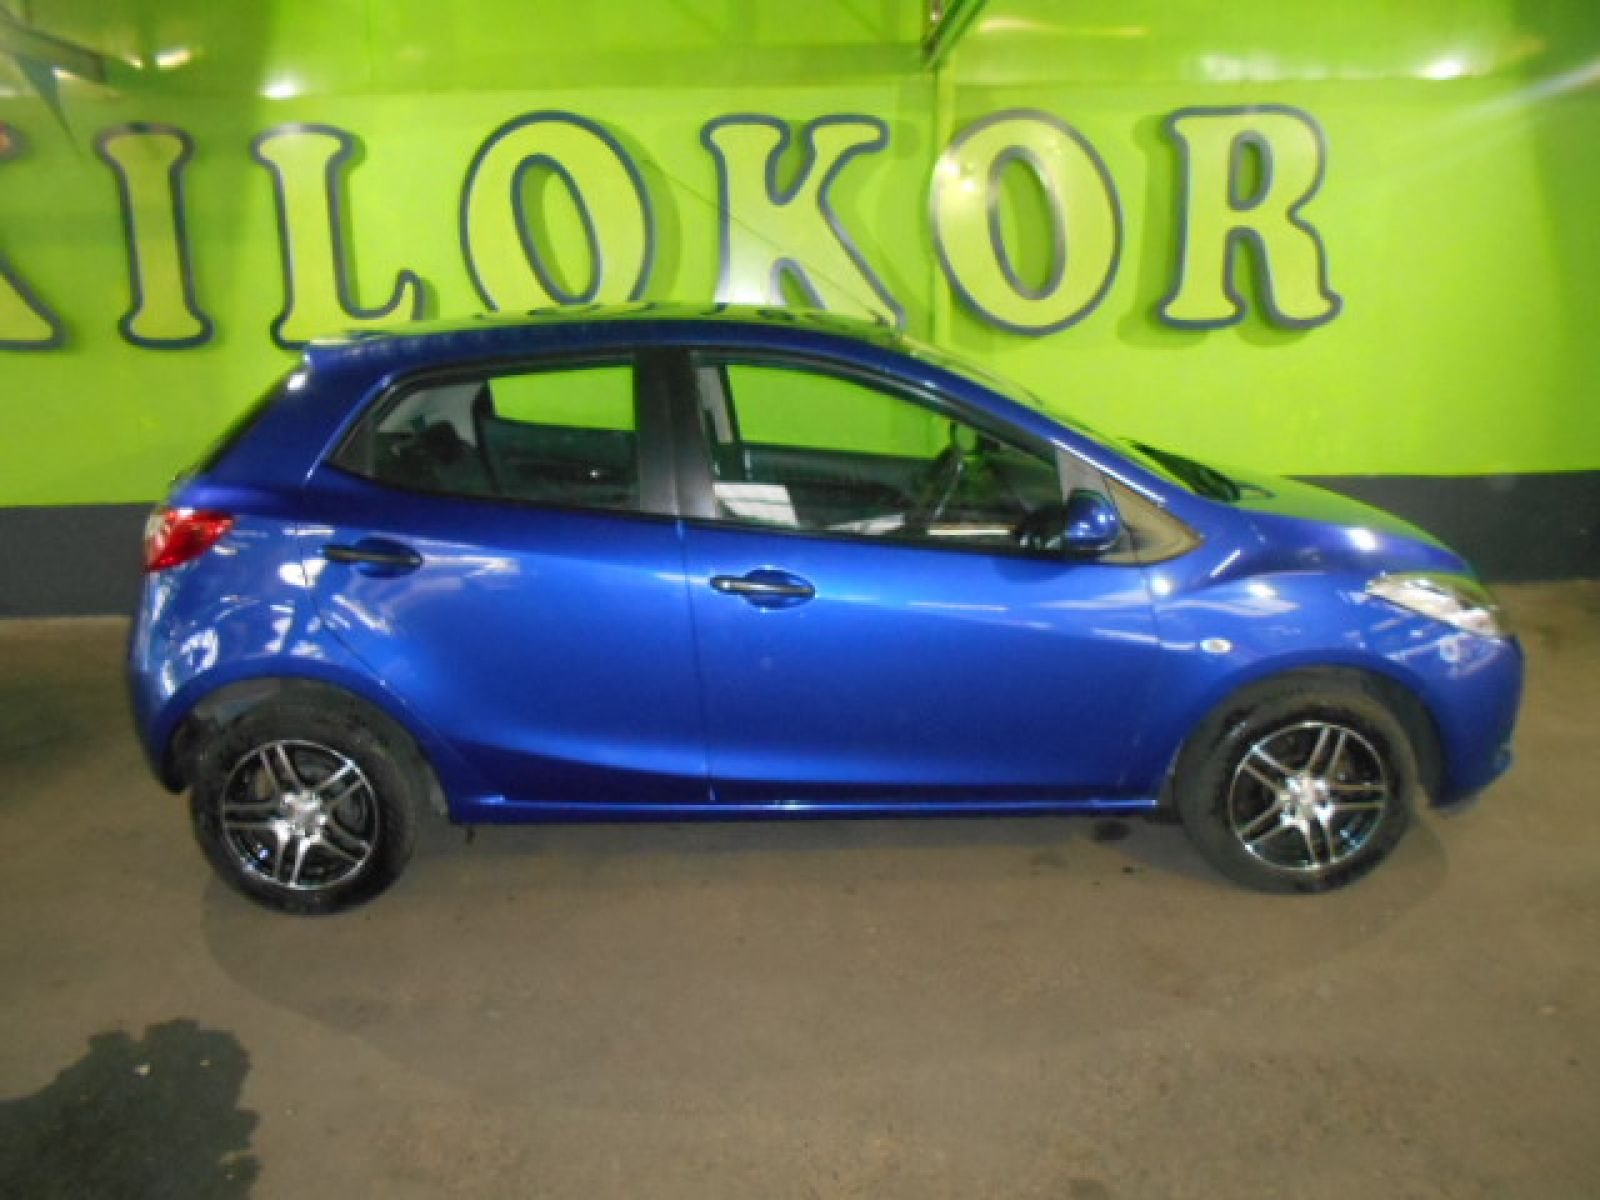 2010 Mazda 2 R 109 990 For Sale Kilokor Motors